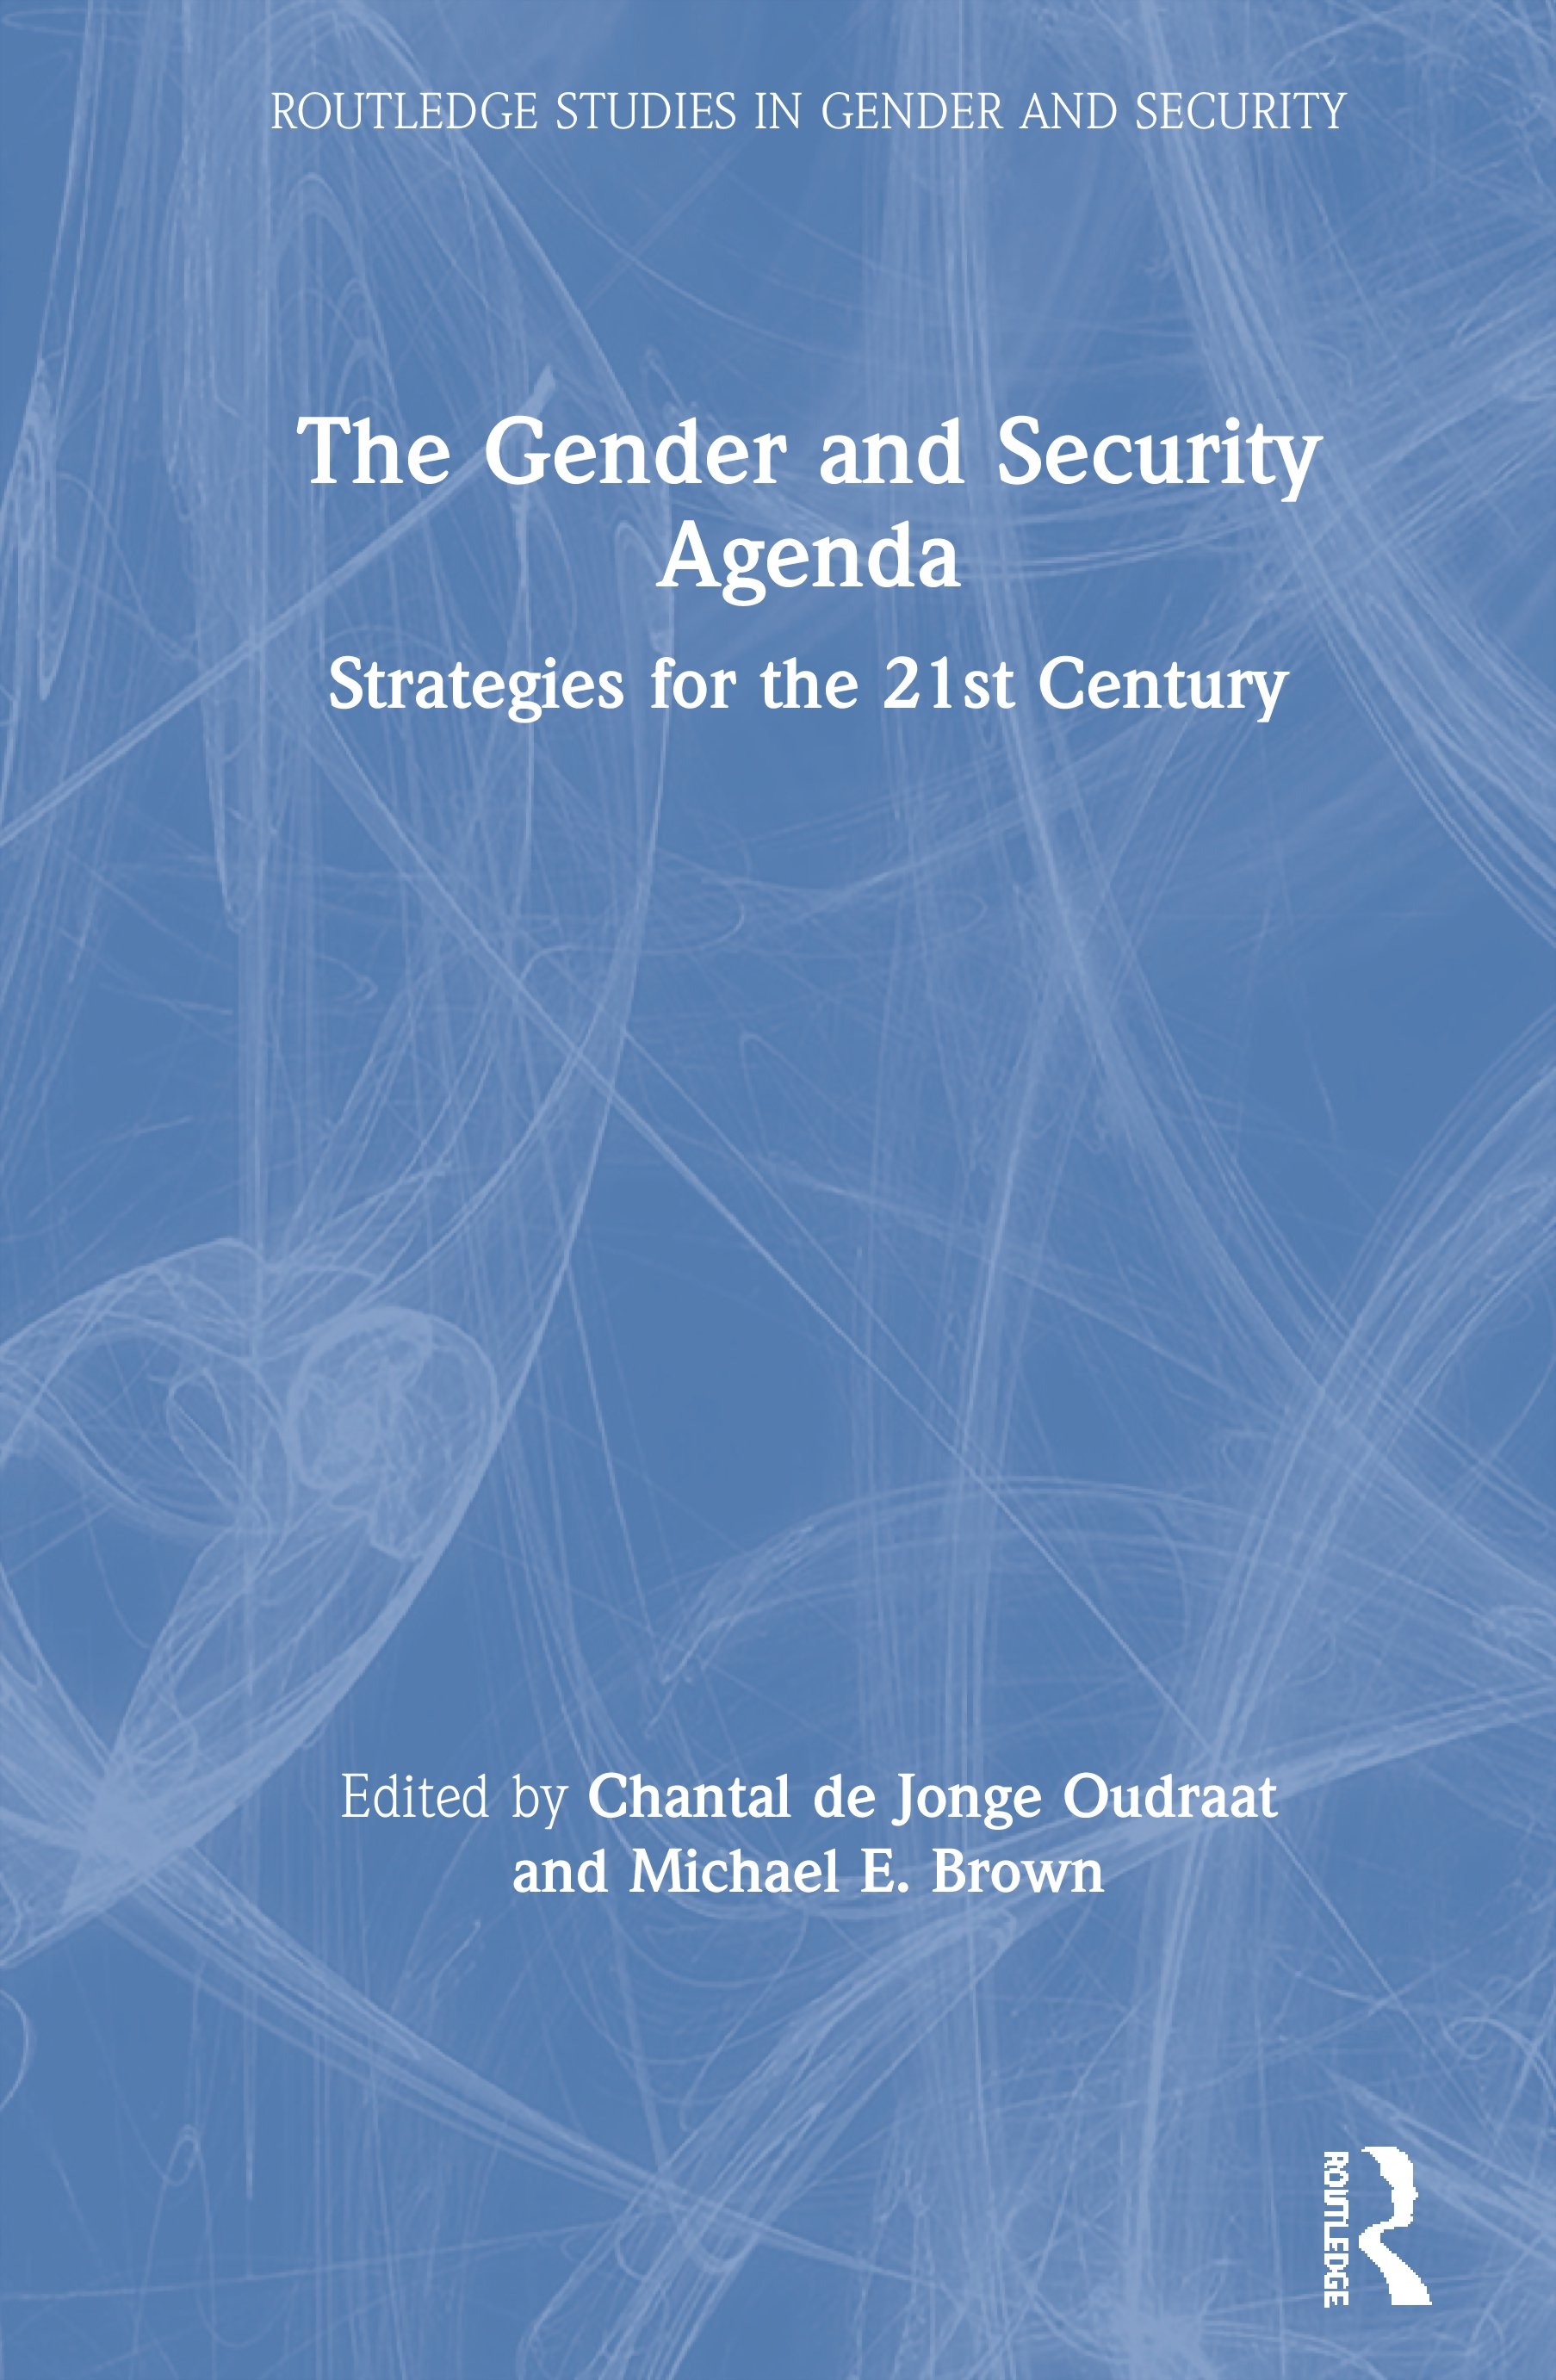 The Gender and Security Agenda: Strategies for the 21st Century book cover